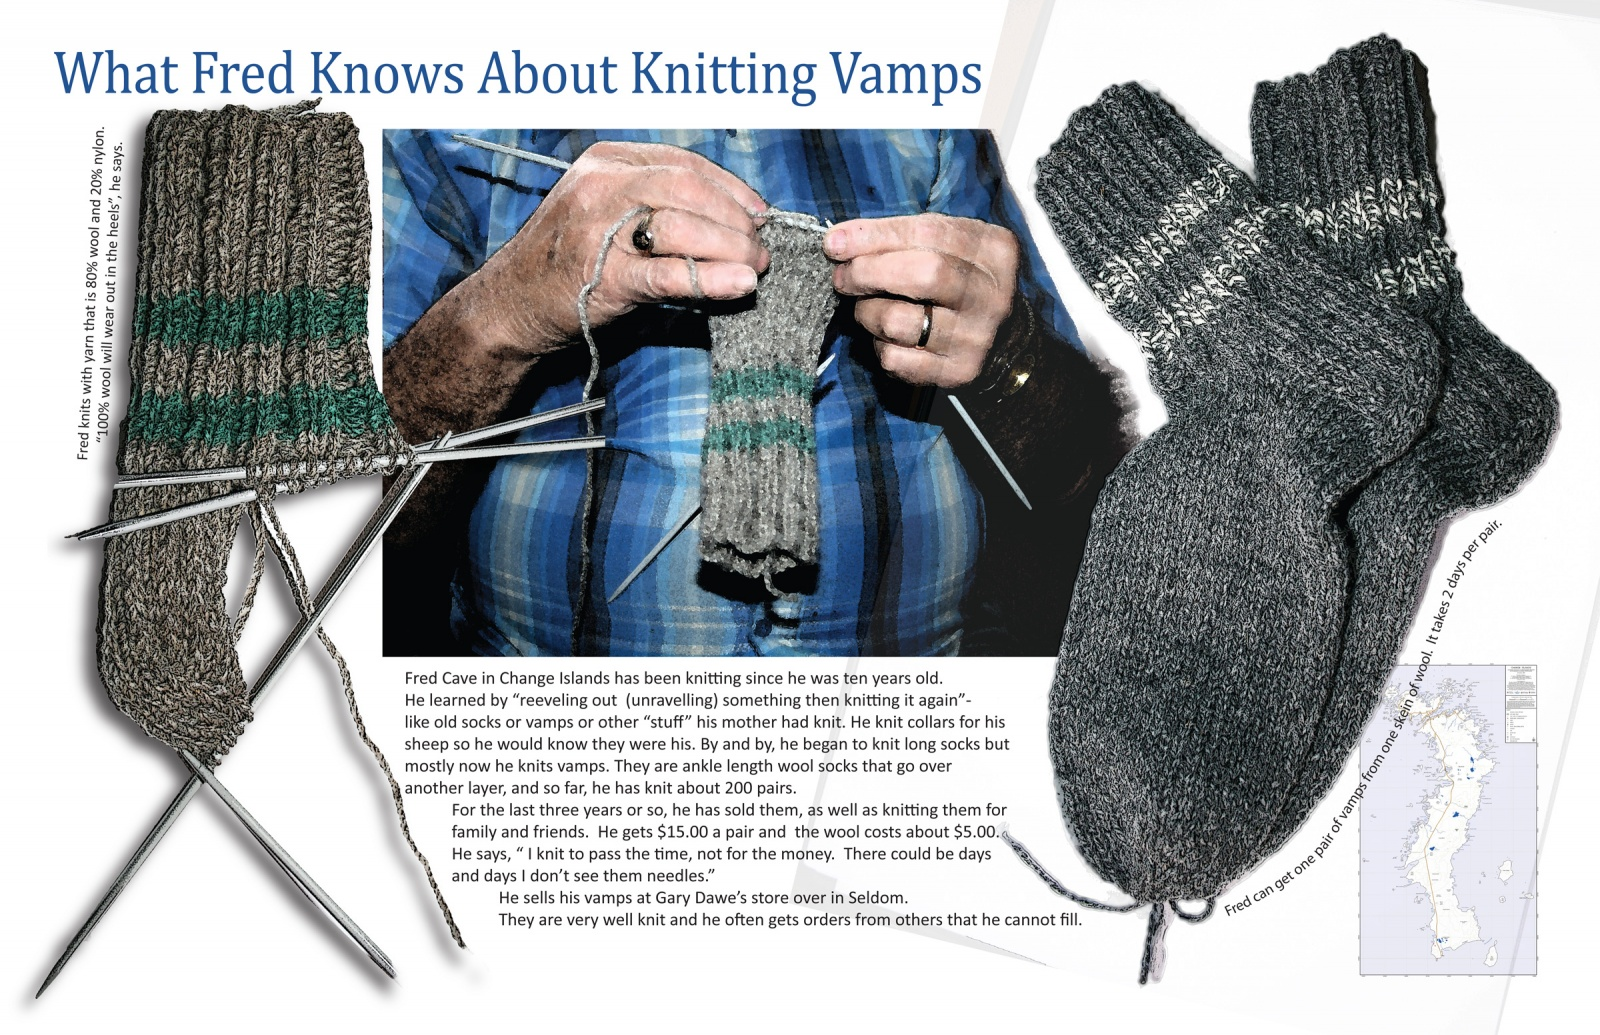 What Fred Knows About Knitting Vamps